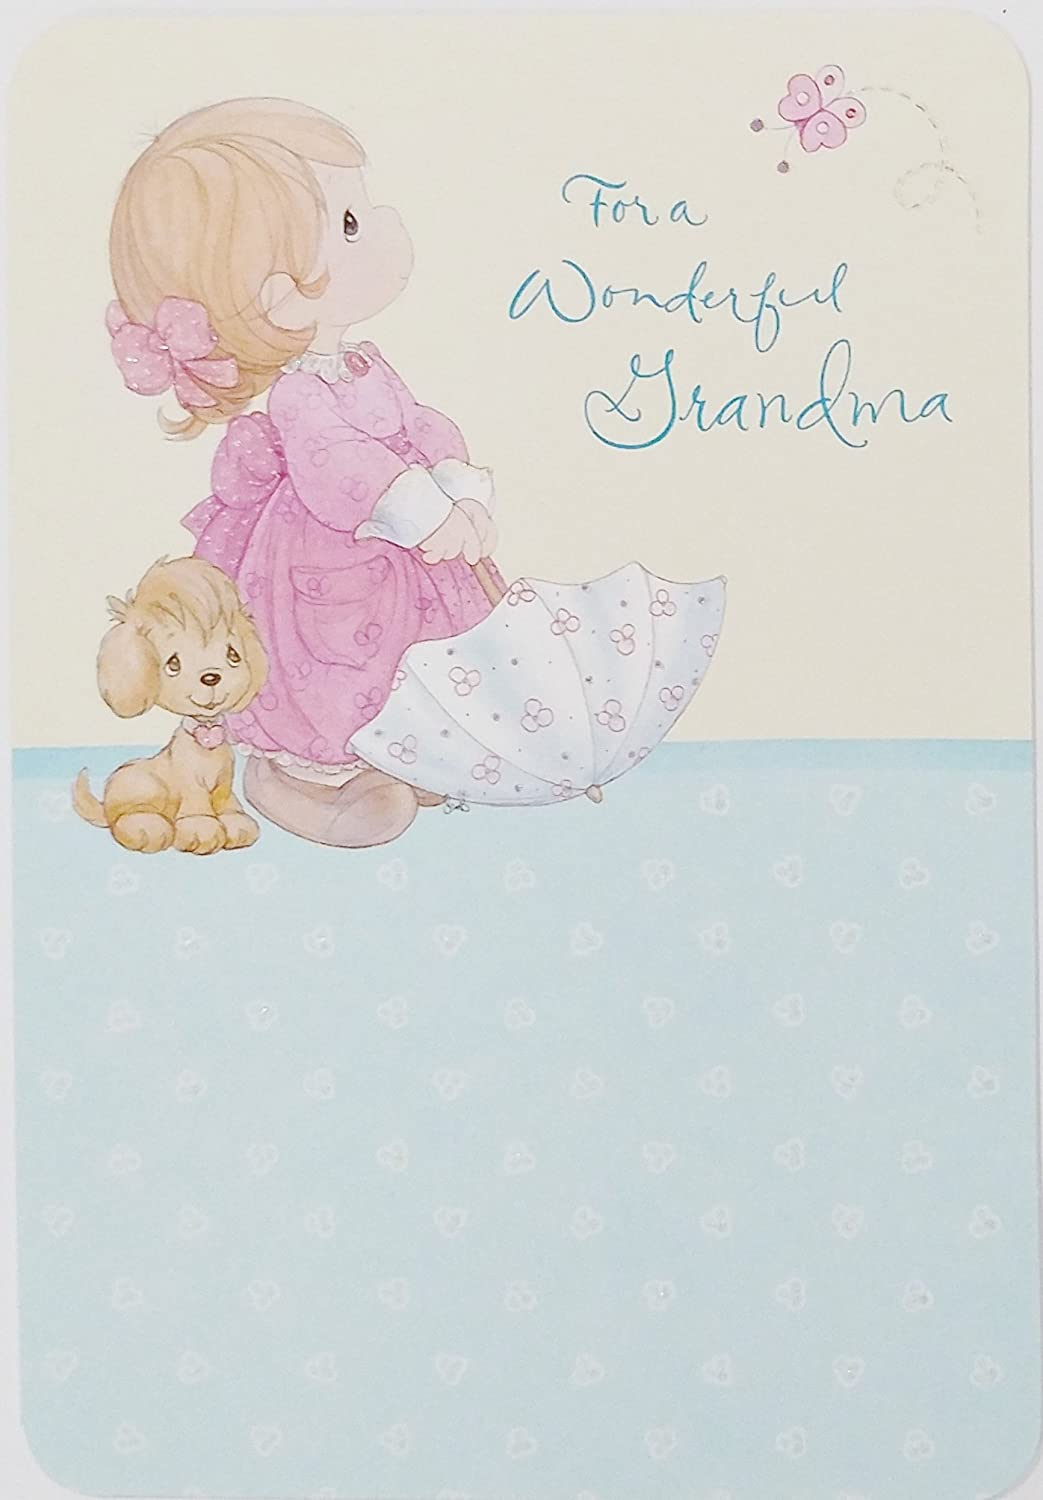 Amazon.com : Precious Moments - For a Wonderful Grandma - Mother's Day Greeting  Card : Office Products